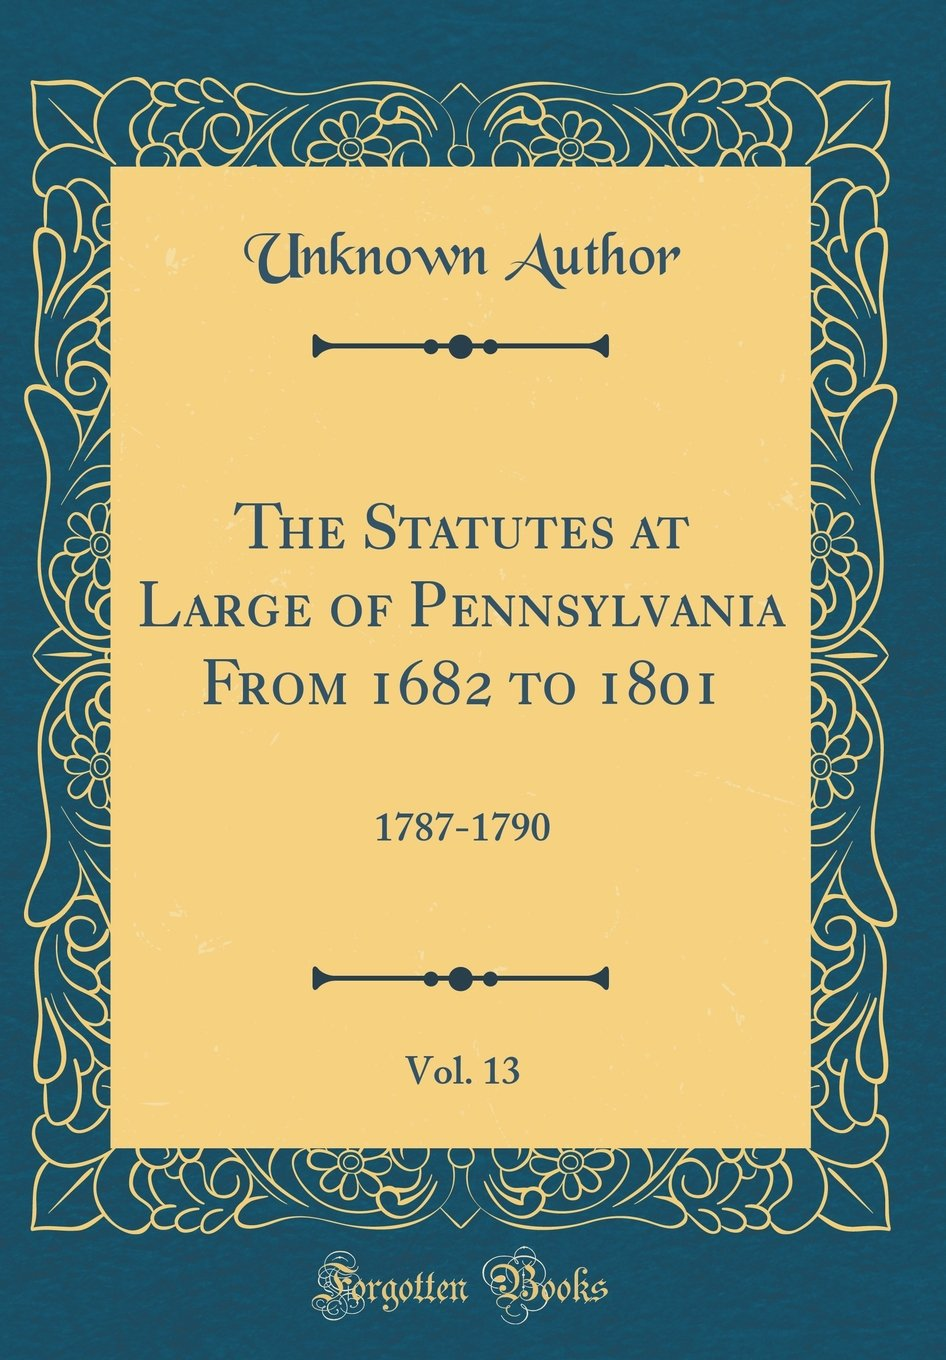 Read Online The Statutes at Large of Pennsylvania From 1682 to 1801, Vol. 13: 1787-1790 (Classic Reprint) ebook